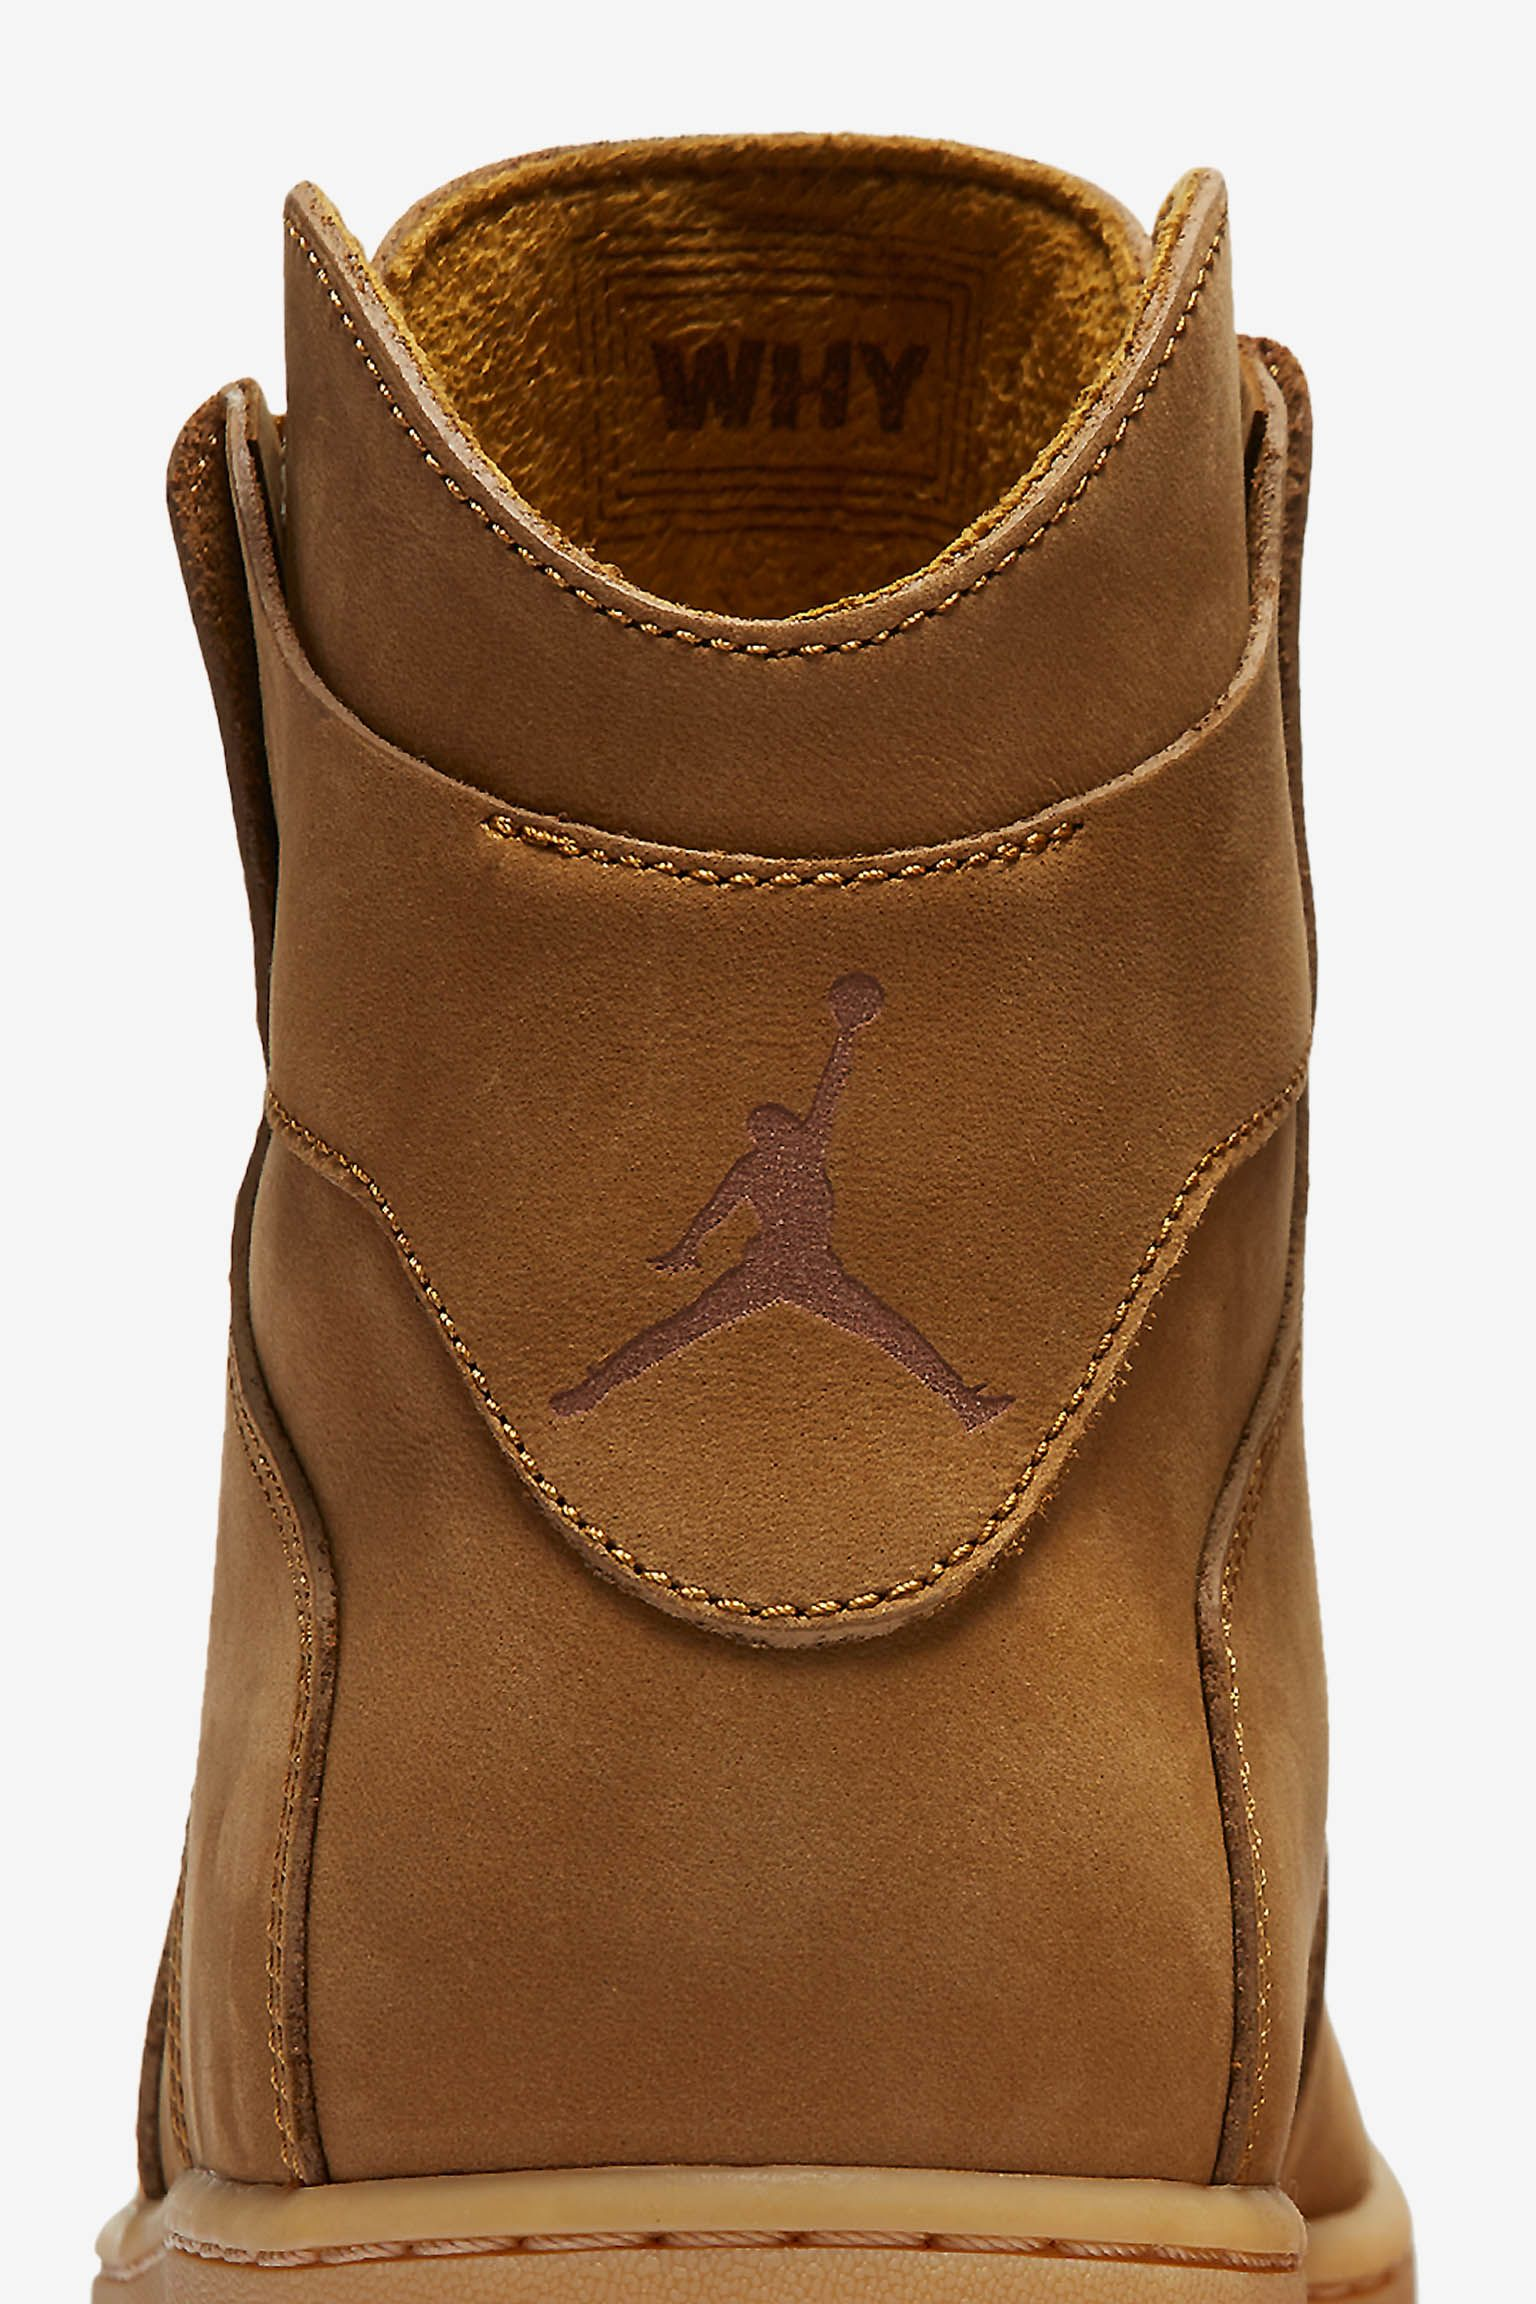 Jordan Westbrook 0.2 'Wheat'